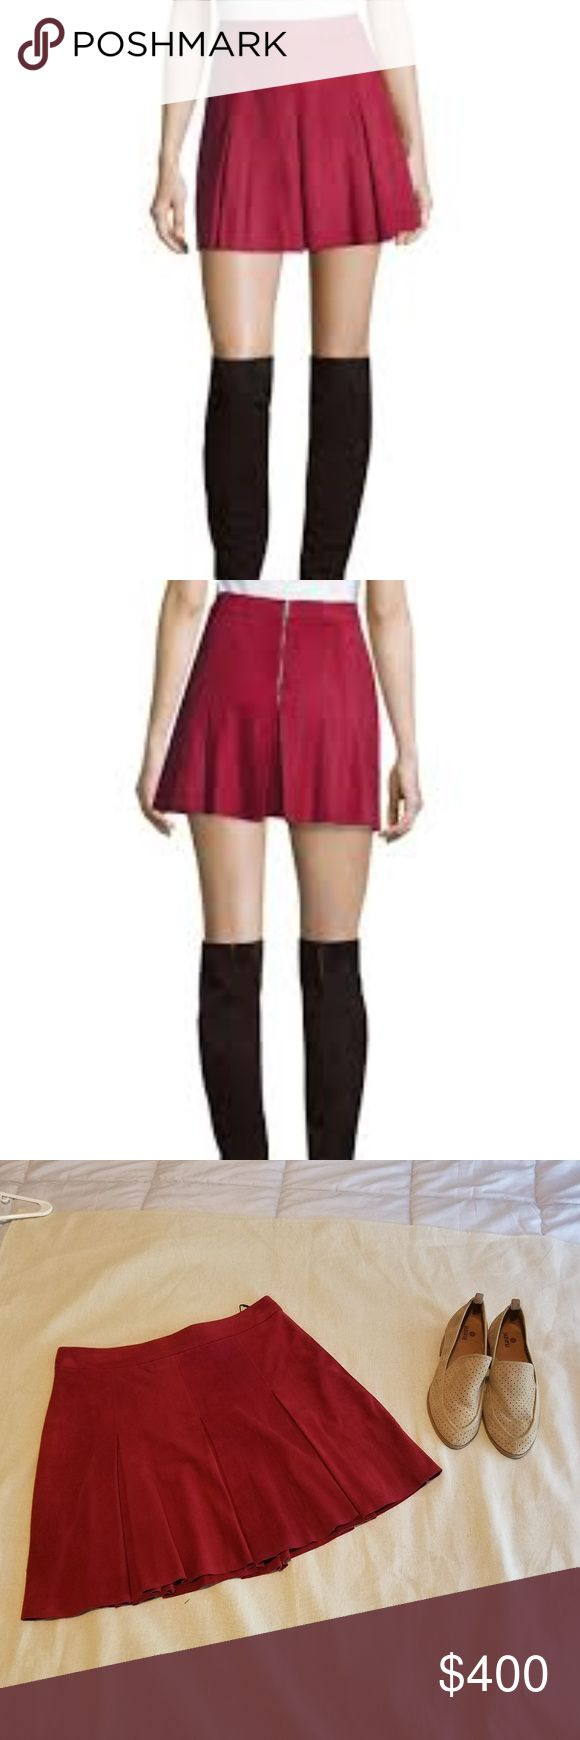 "Alice & Olivia Lee Red Pleated Suede Mini Skirt Topstitched pleats release kicky flare to an A-line mini cut from supersoft and supple goat suede.  Size: 8 Color: Bordeaux (Red/Burgundy)  Product Details: Rise sits just below the natural waist. A-line silhouette. Box pleats. Exposed back zip closure Stretch lining  Measurements: Approx. 16.5"" length (size 8)  Materials: 100% goat leather  Care: Professional leather clean Alice & Olivia Skirts Mini"